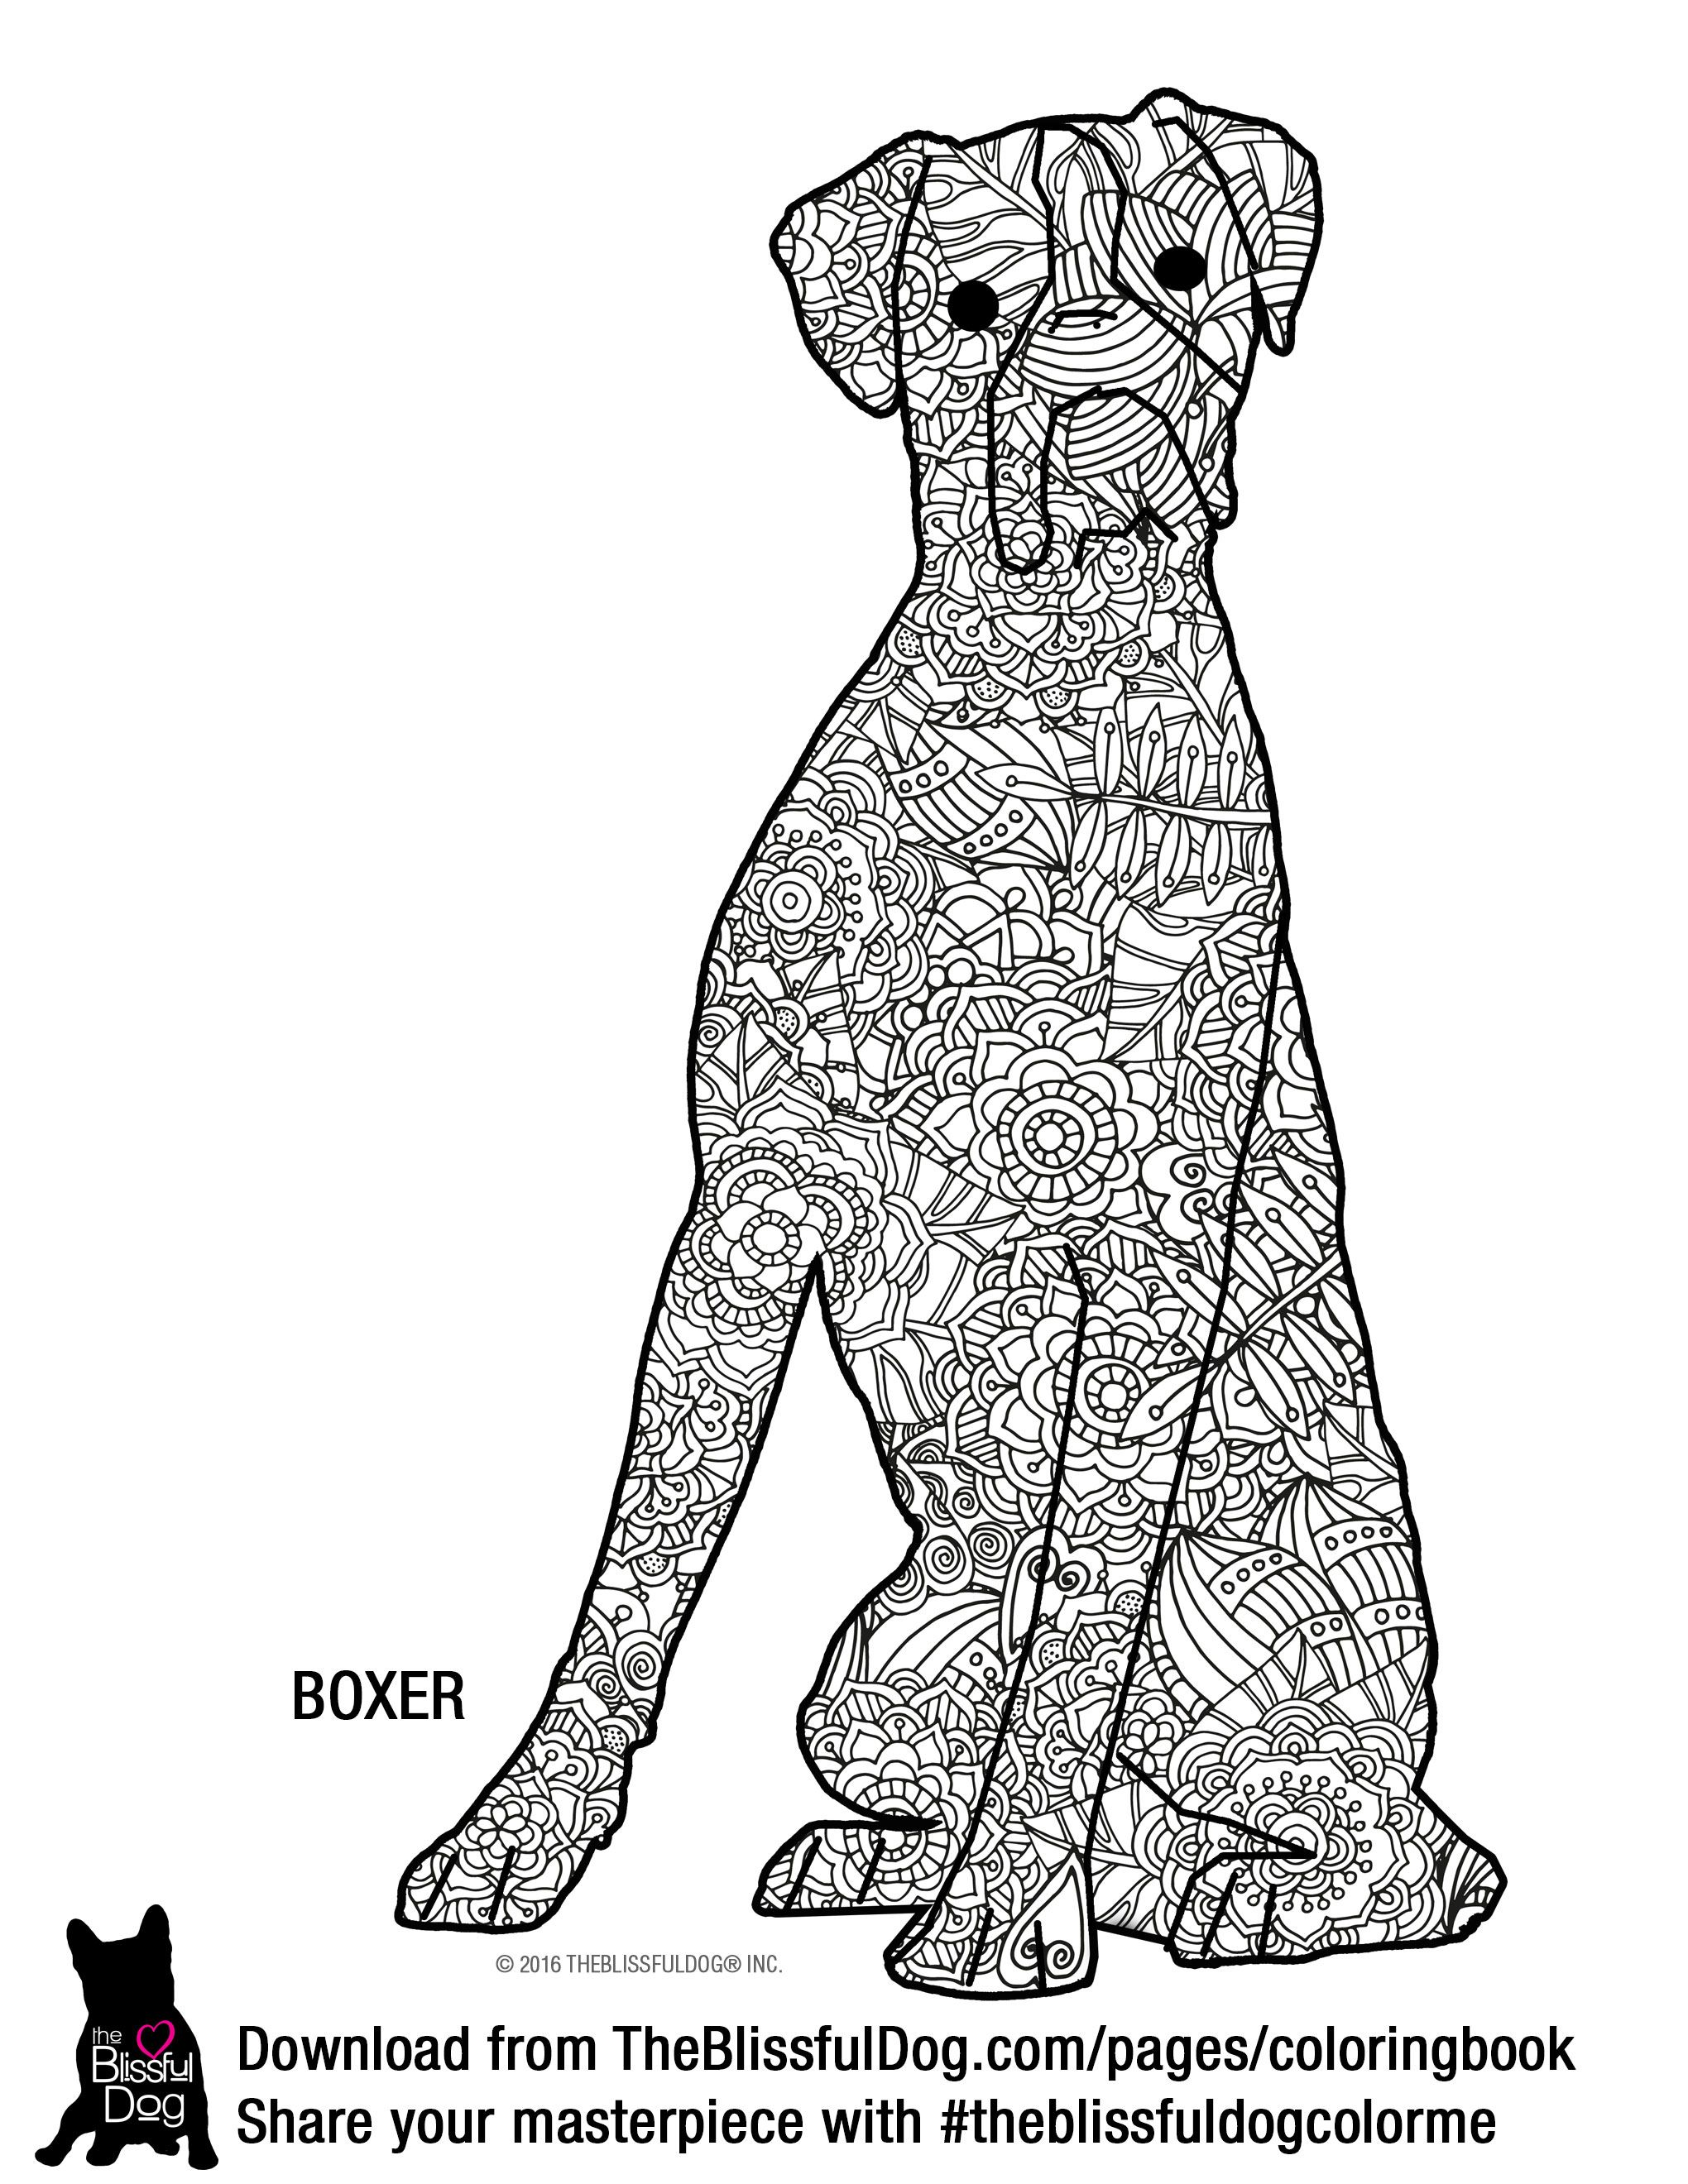 And The Boxer Coloring Book Page This Is A Harder One Hehehe Puppy Coloring Pages Dog Coloring Book Dog Coloring Page